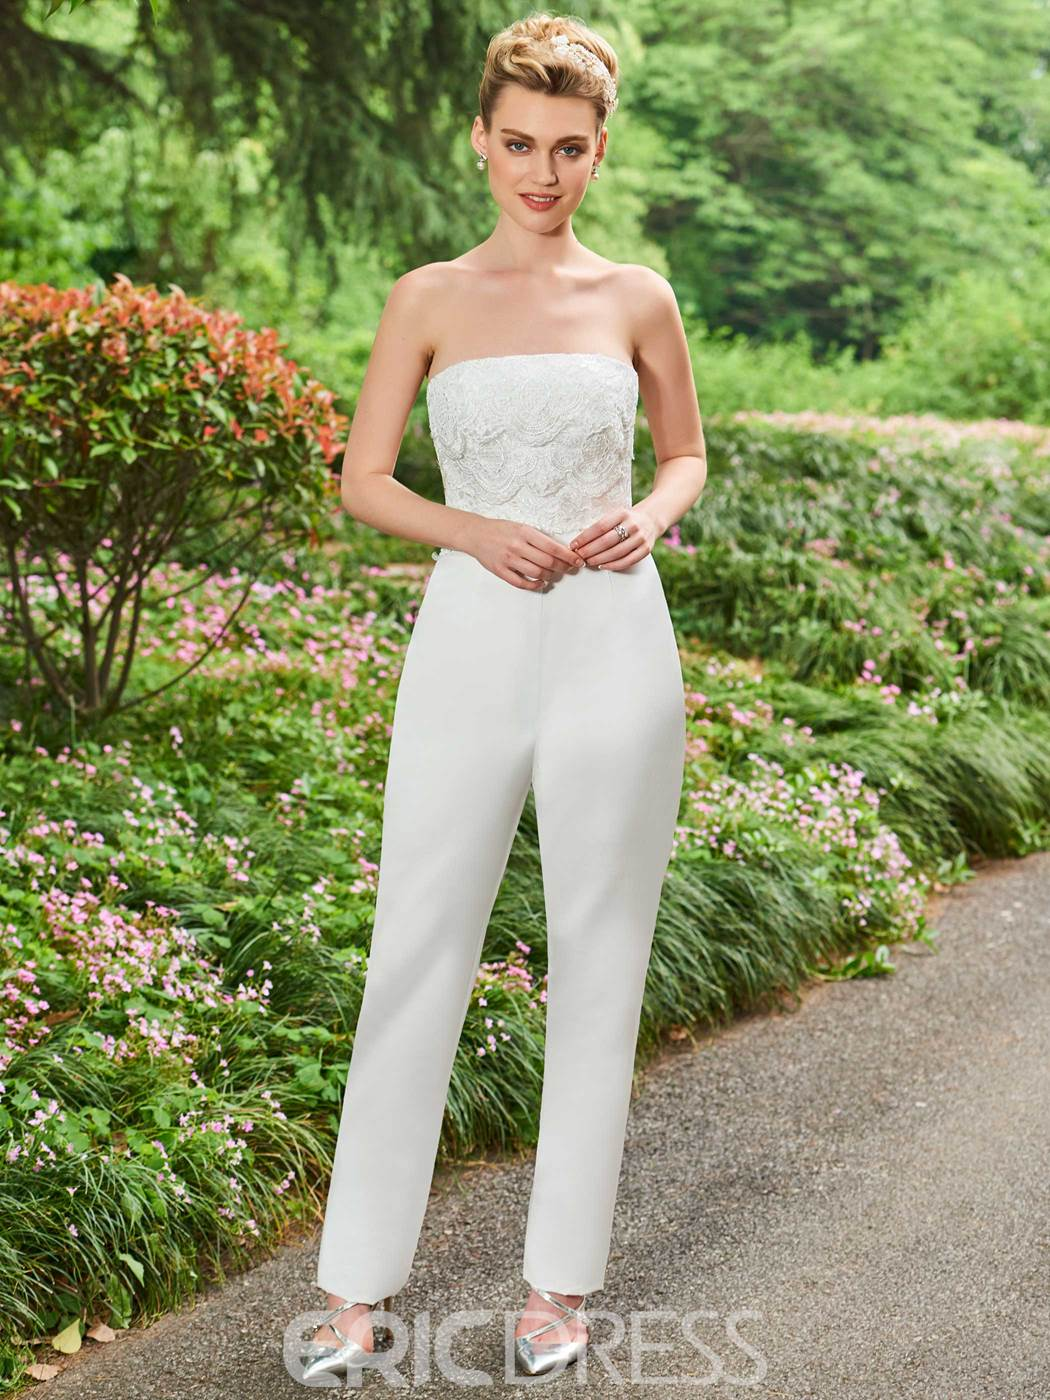 Ericdress trägerlosen appliques tulle wedding jumpsuit